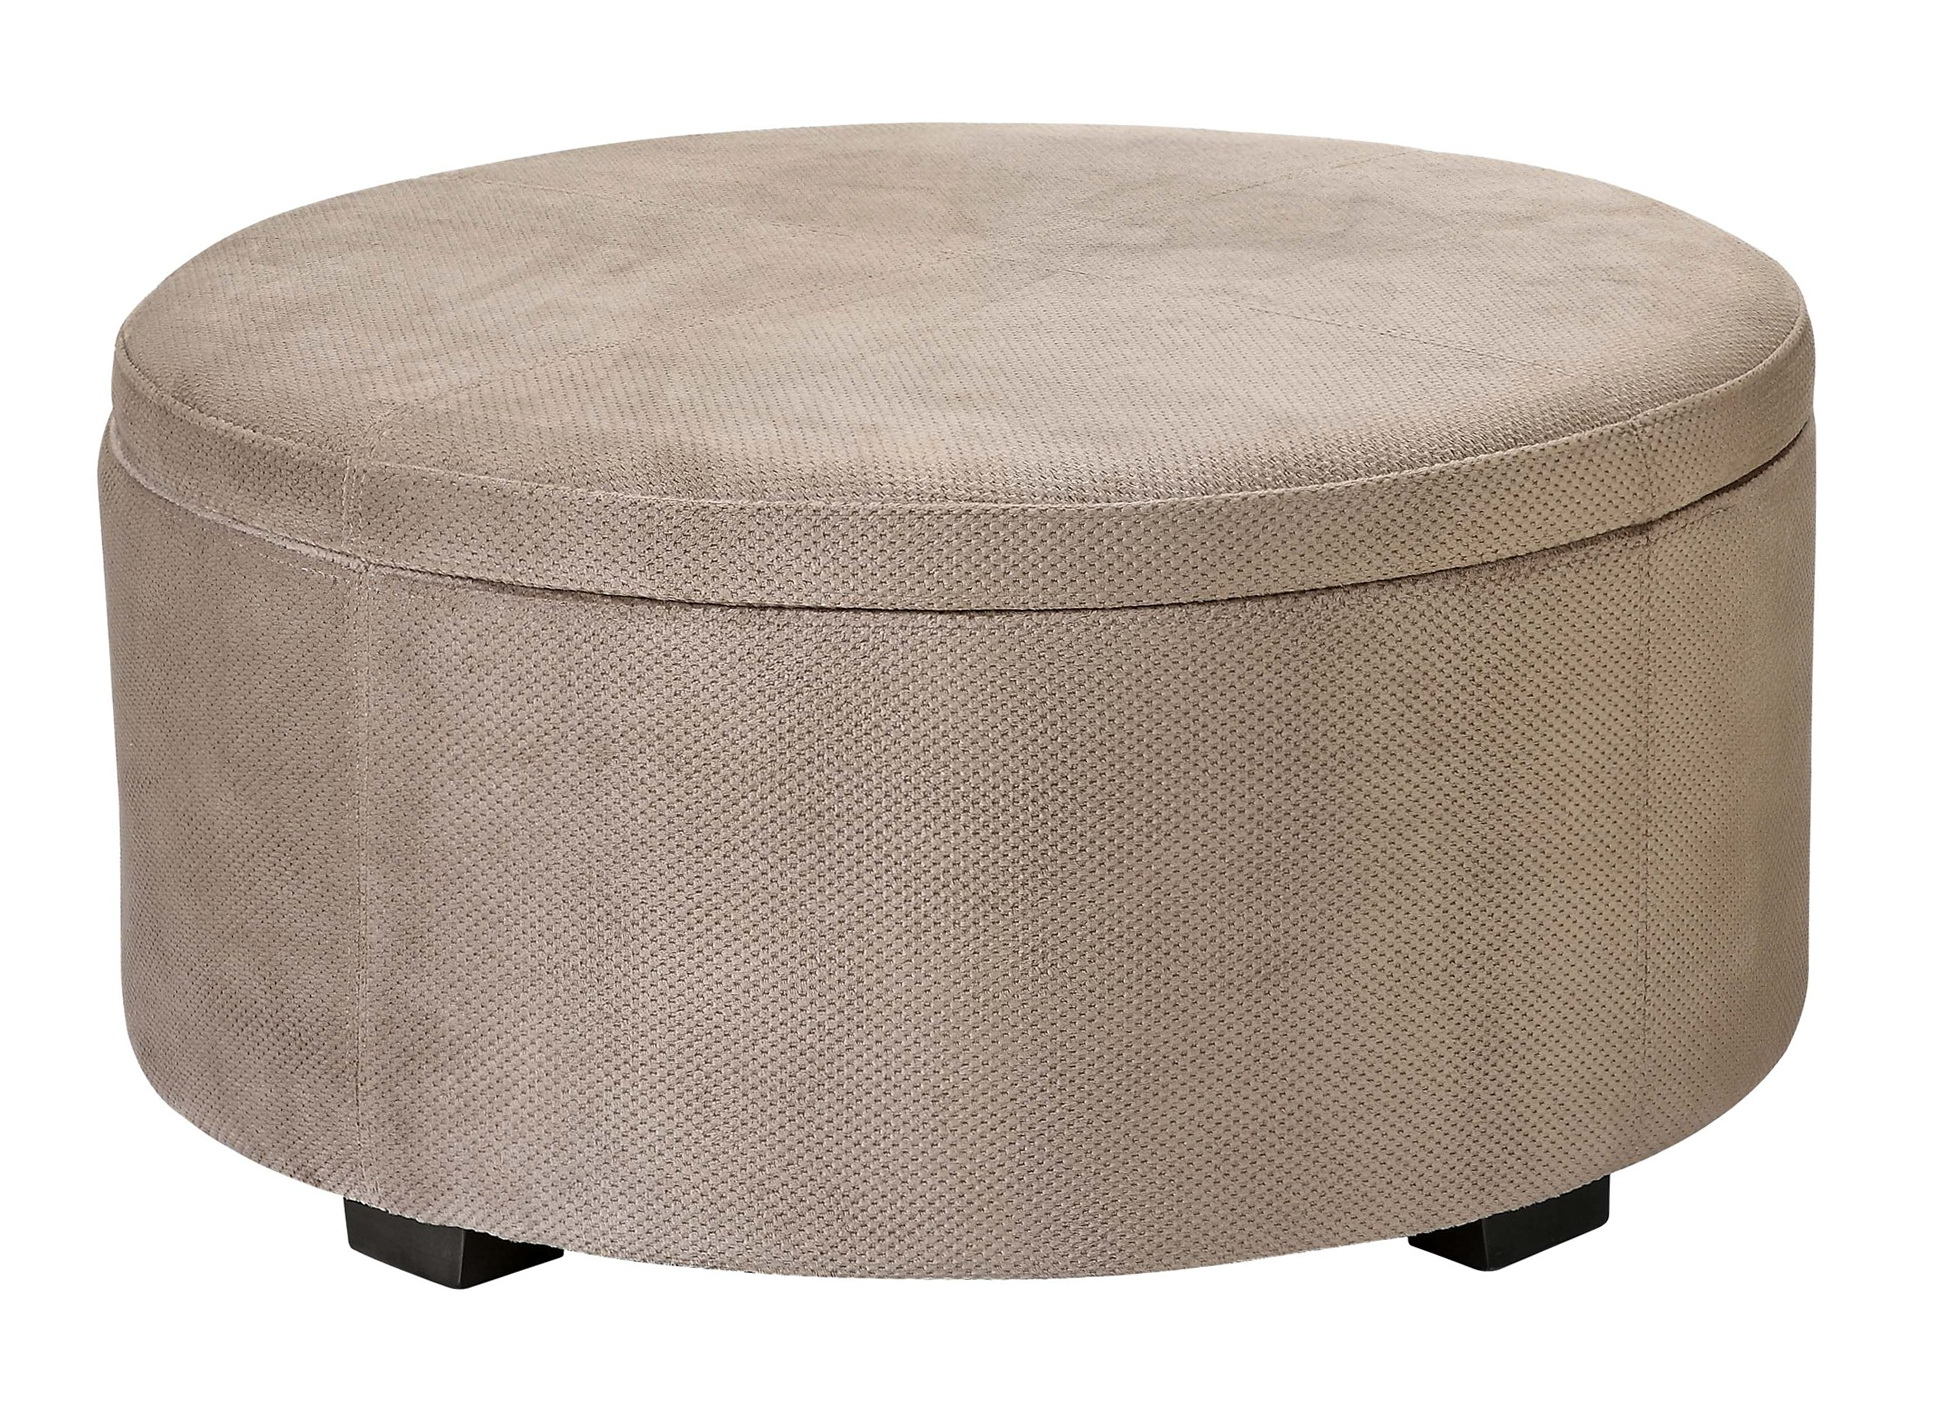 Large Round Ottoman For Sale Home Design Ideas